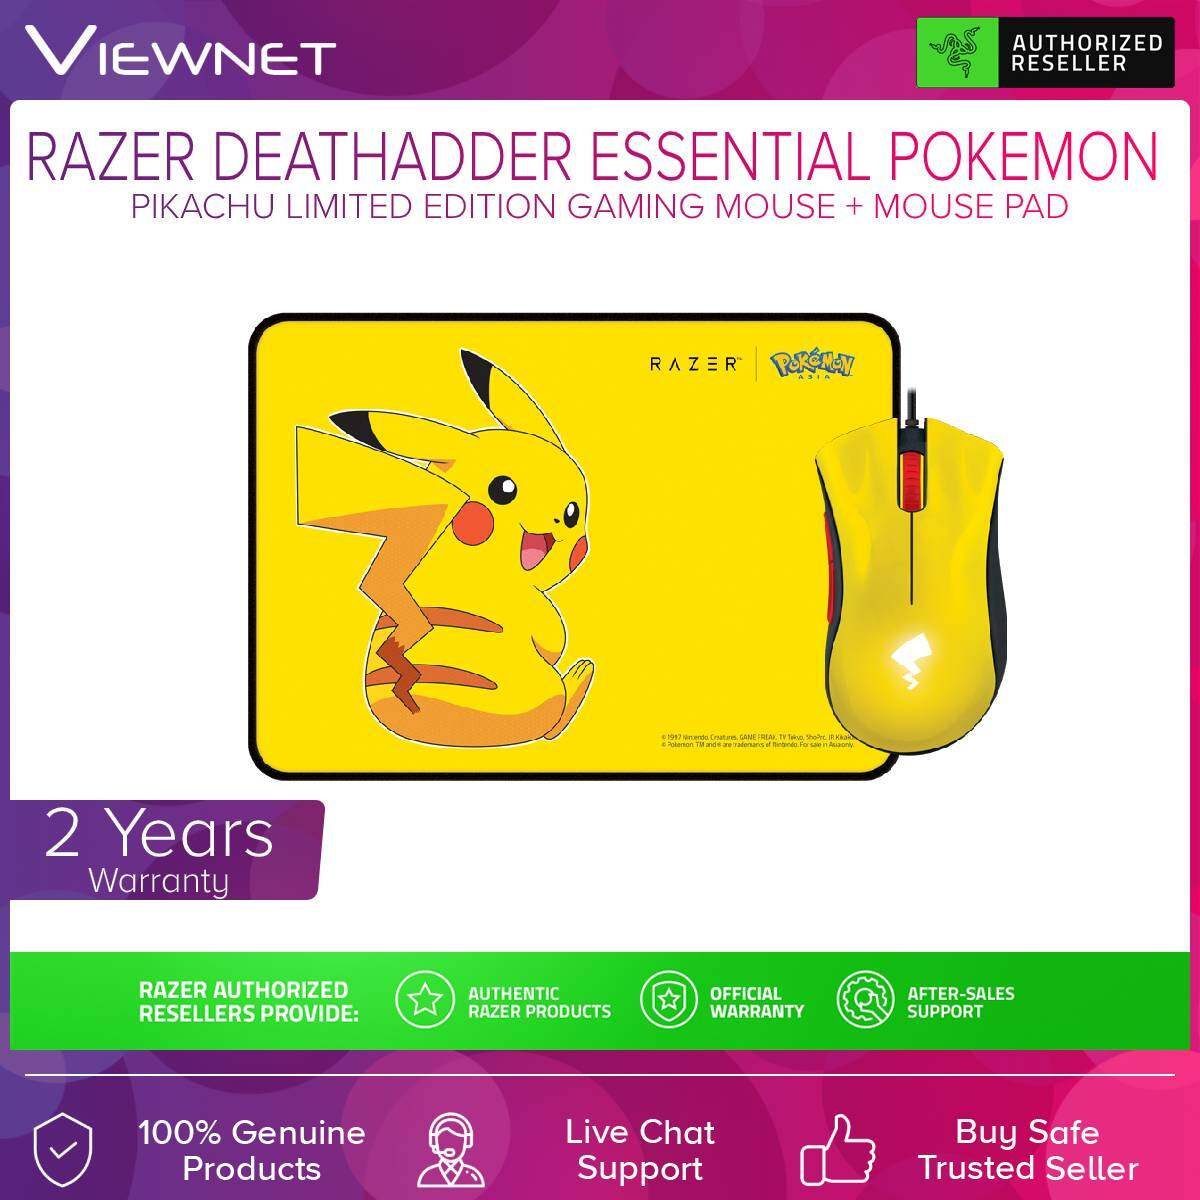 Razer Deathadder Essential Pokemon Pikachu Limited Edition Gaming Mouse + Mouse Pad